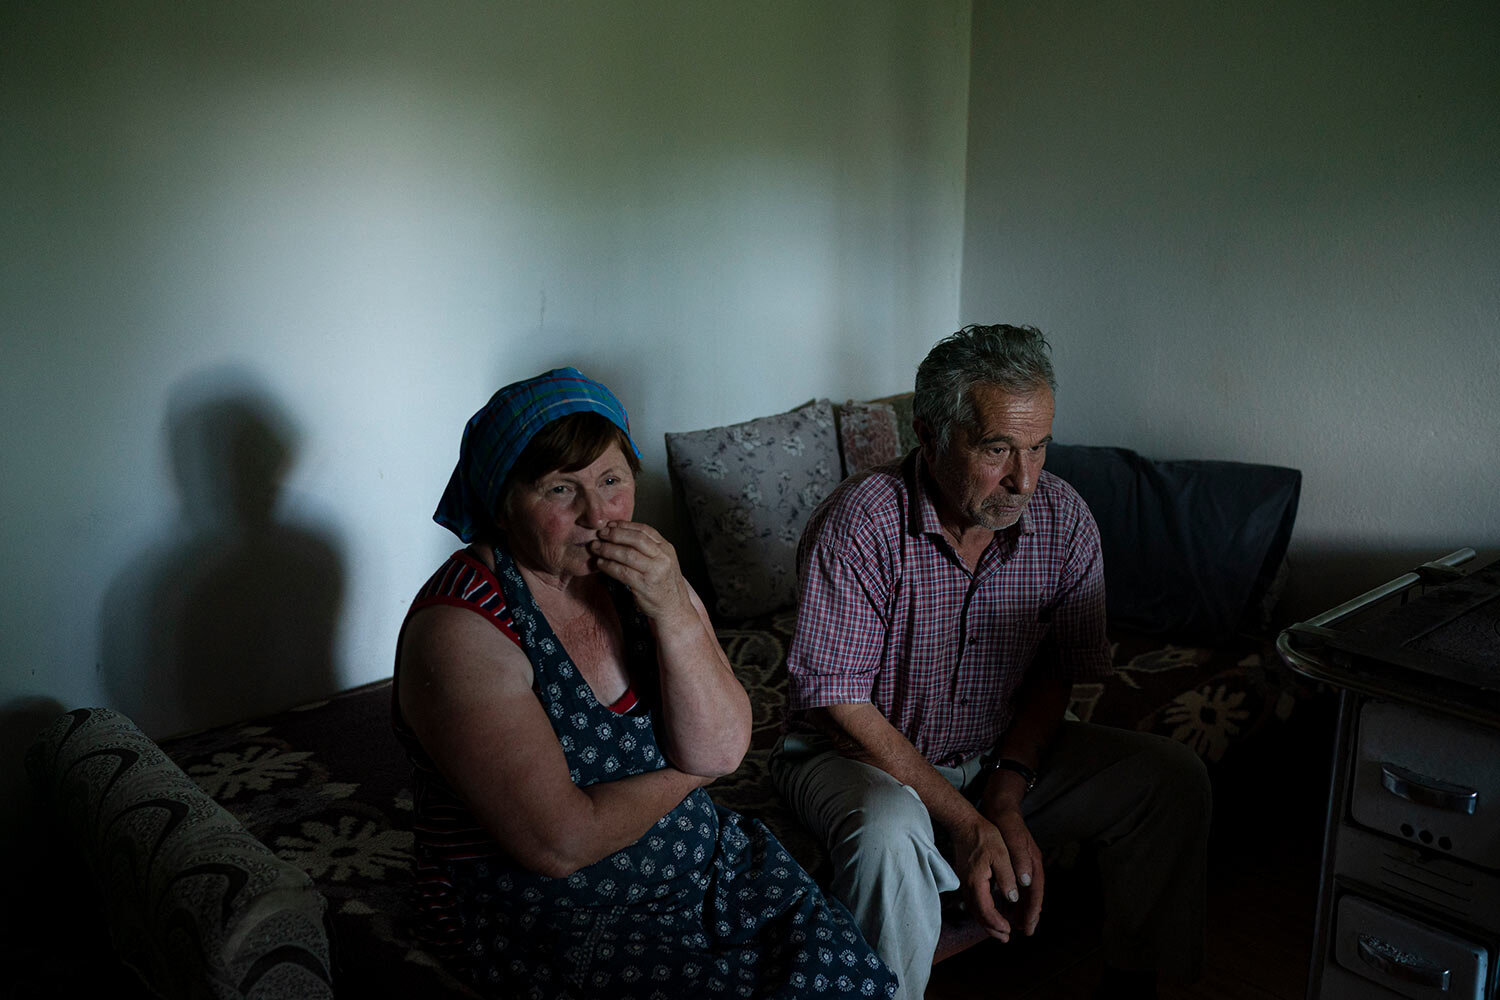 Jorgji Ilia, 71, a retired schoolteacher, sits with his wife, Vito, 64, inside their home in the village of Kanikol, Albania. (AP Photo/Felipe Dana)